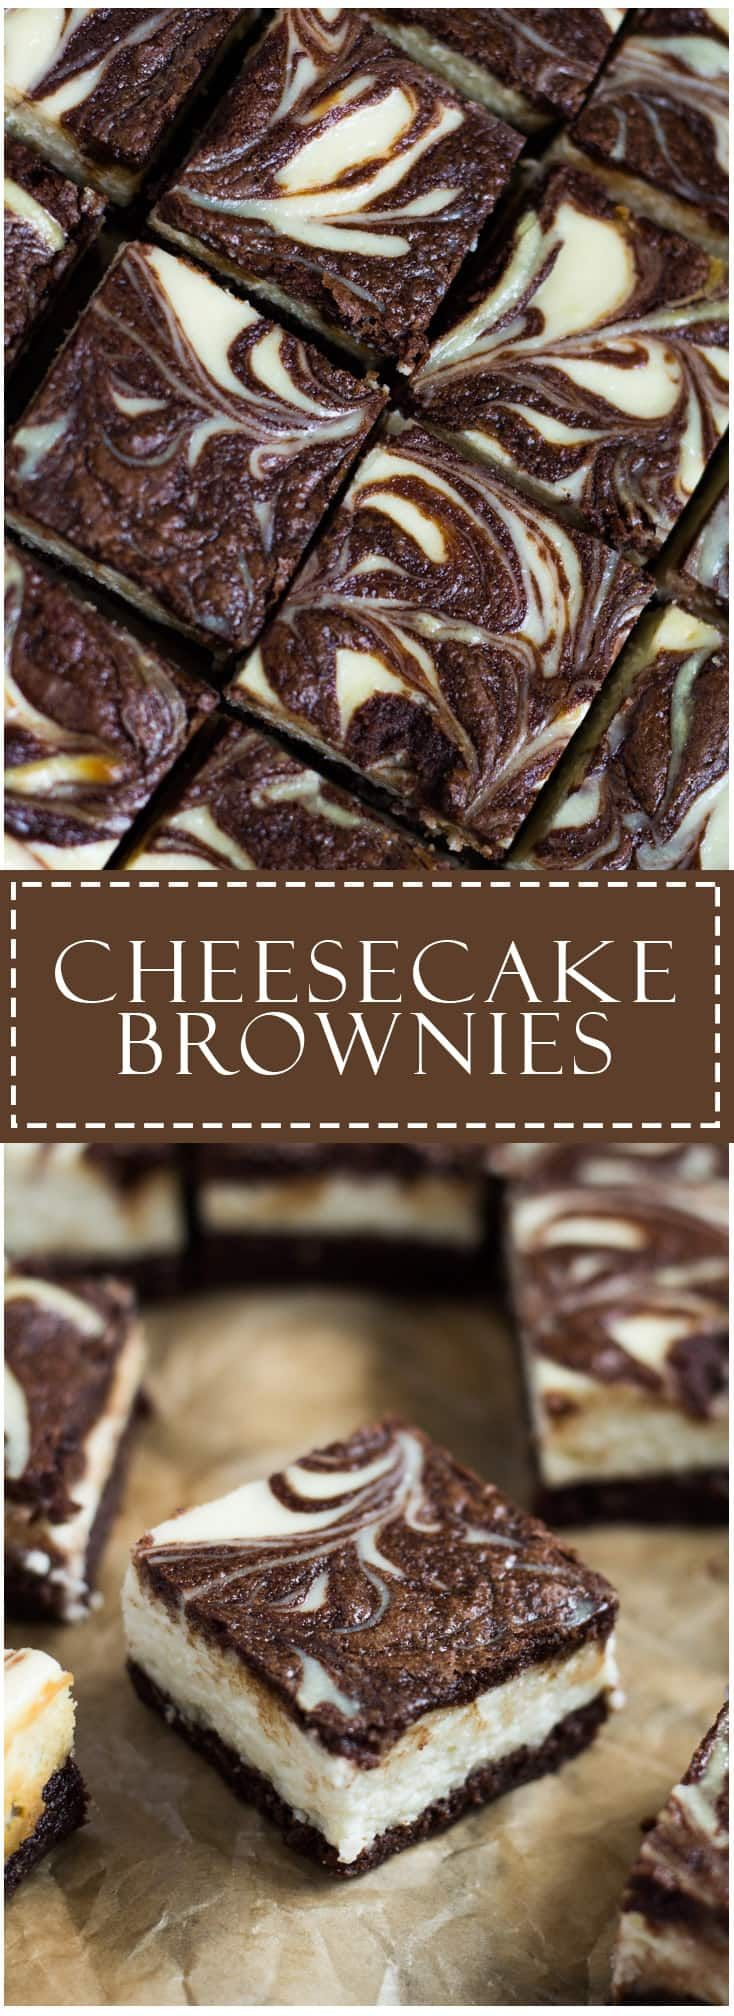 555 Best Cookies And Cakes Images On Pinterest Sweet Recipes Lapis Legit Harum Original Cheesecake Brownies Scrumptiously Rich Fudgy Topped With A Creamy Layer